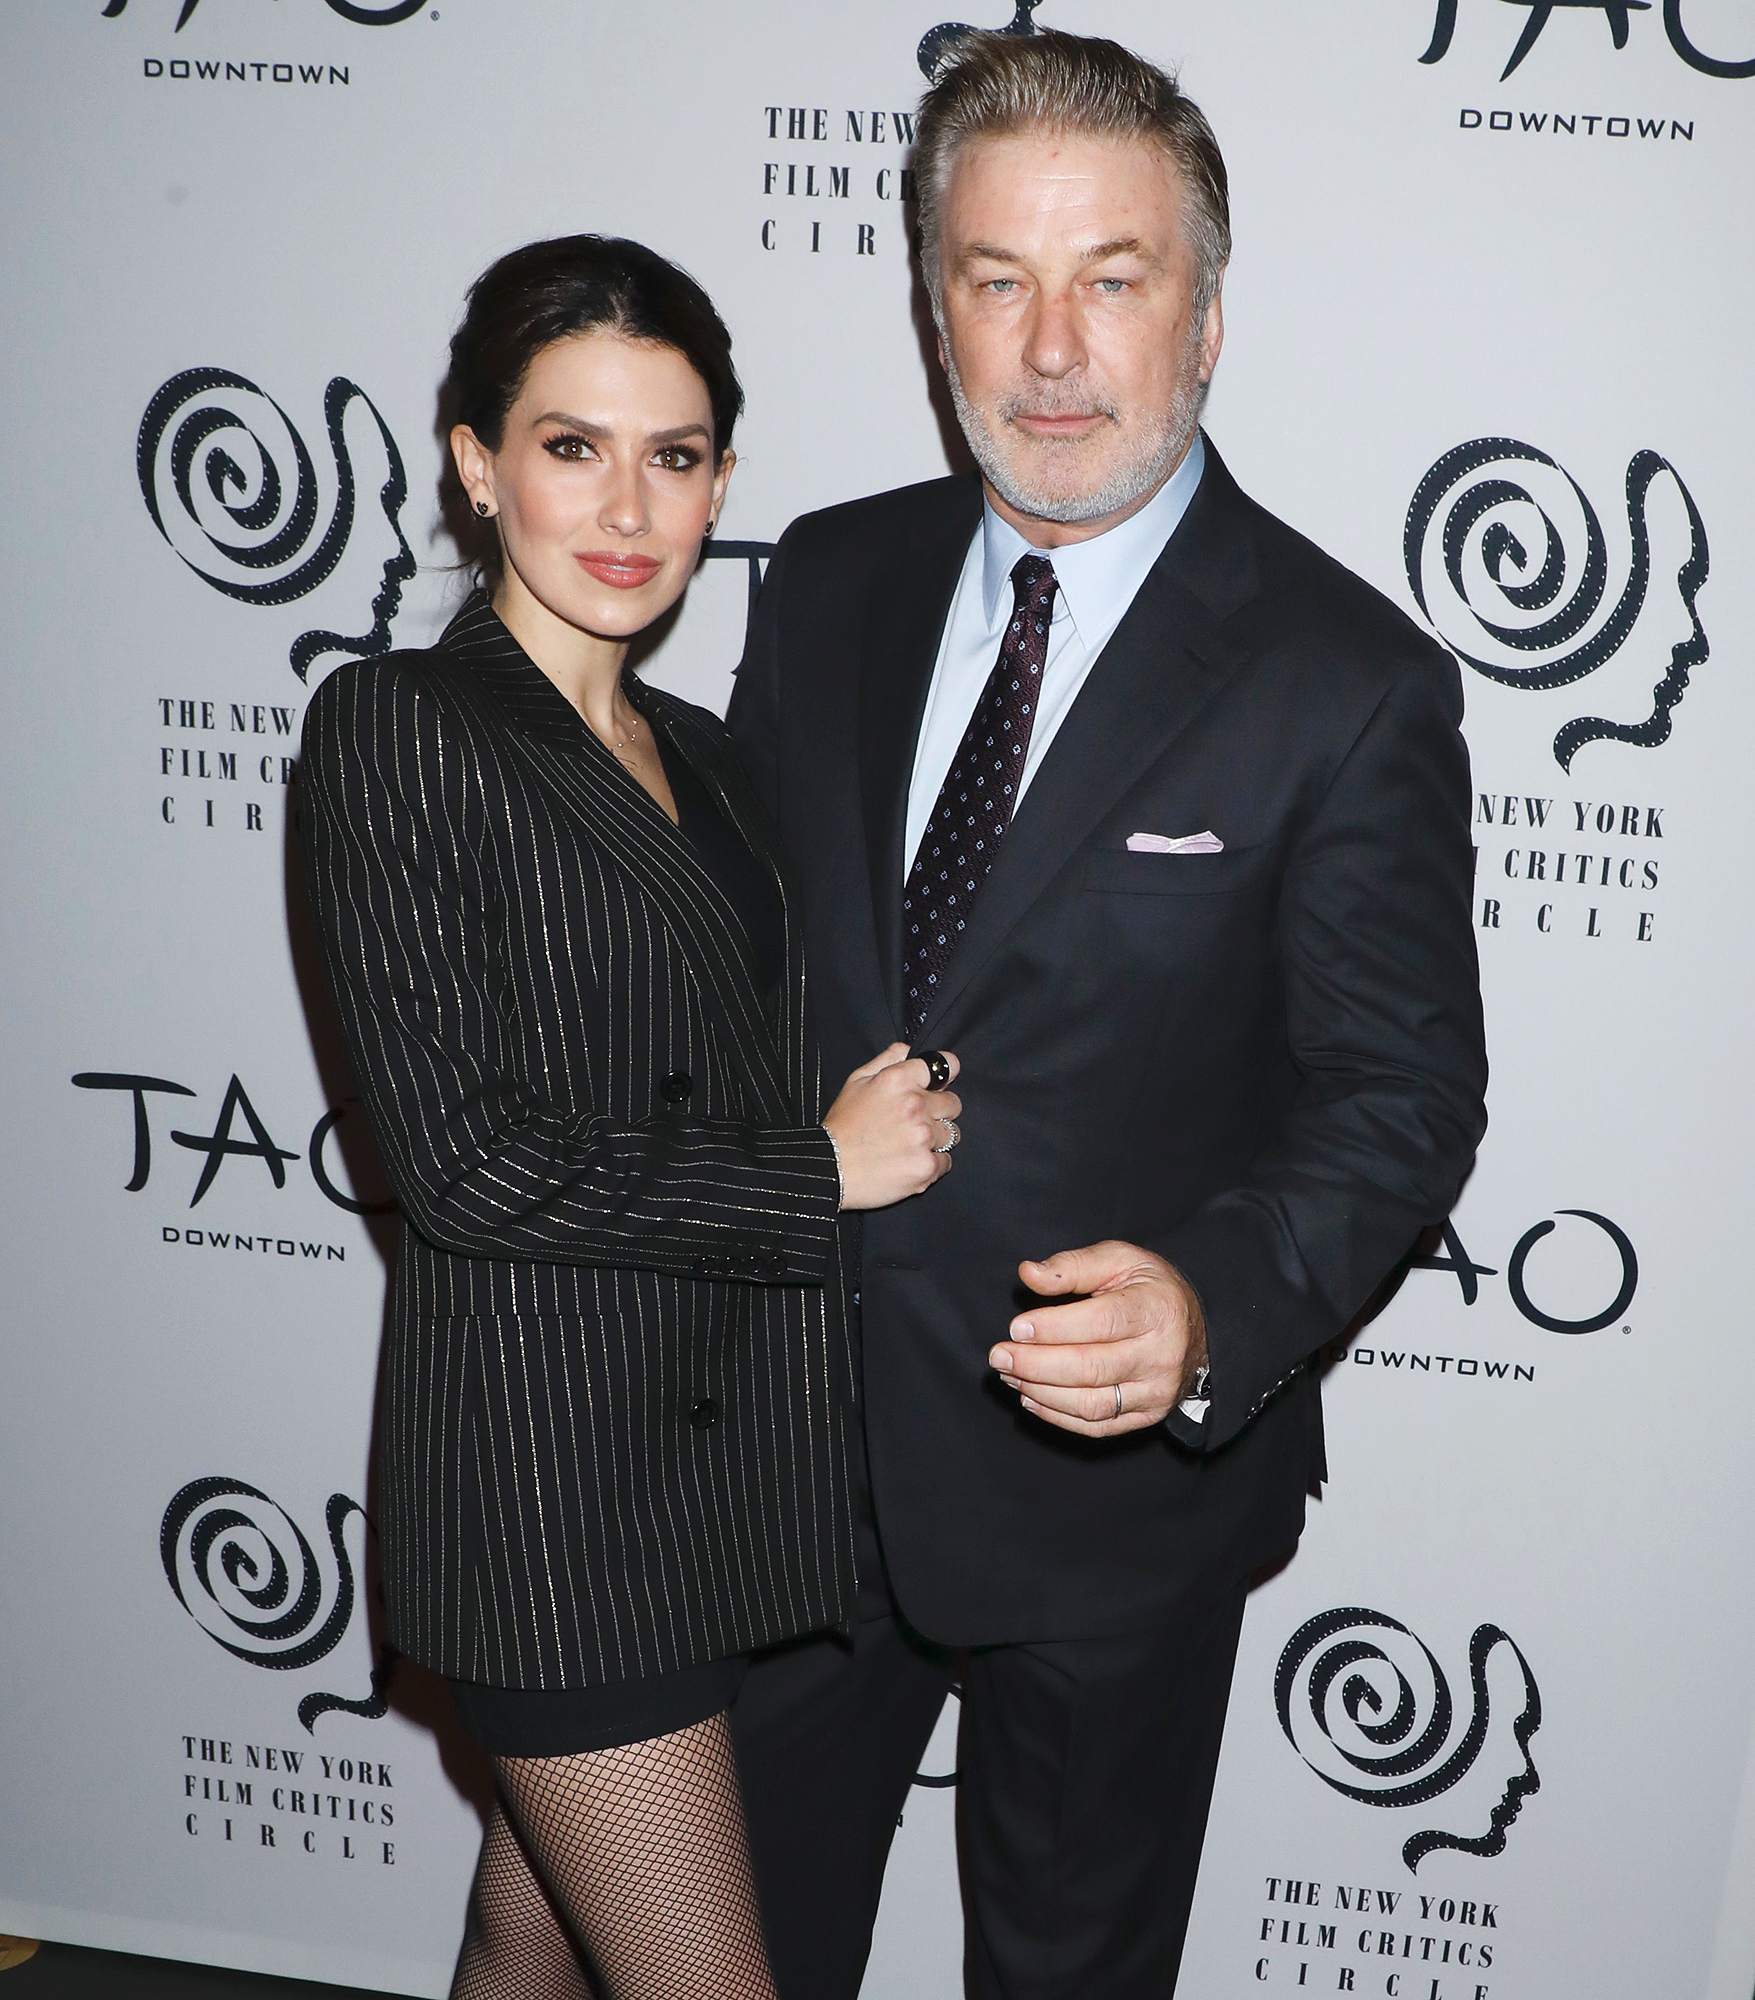 Hilaria-Baldwin-Defends-Letting-Her-and-Alec-Baldwin's-Kids-Go-Outside-Without-Coats-After-Criticism